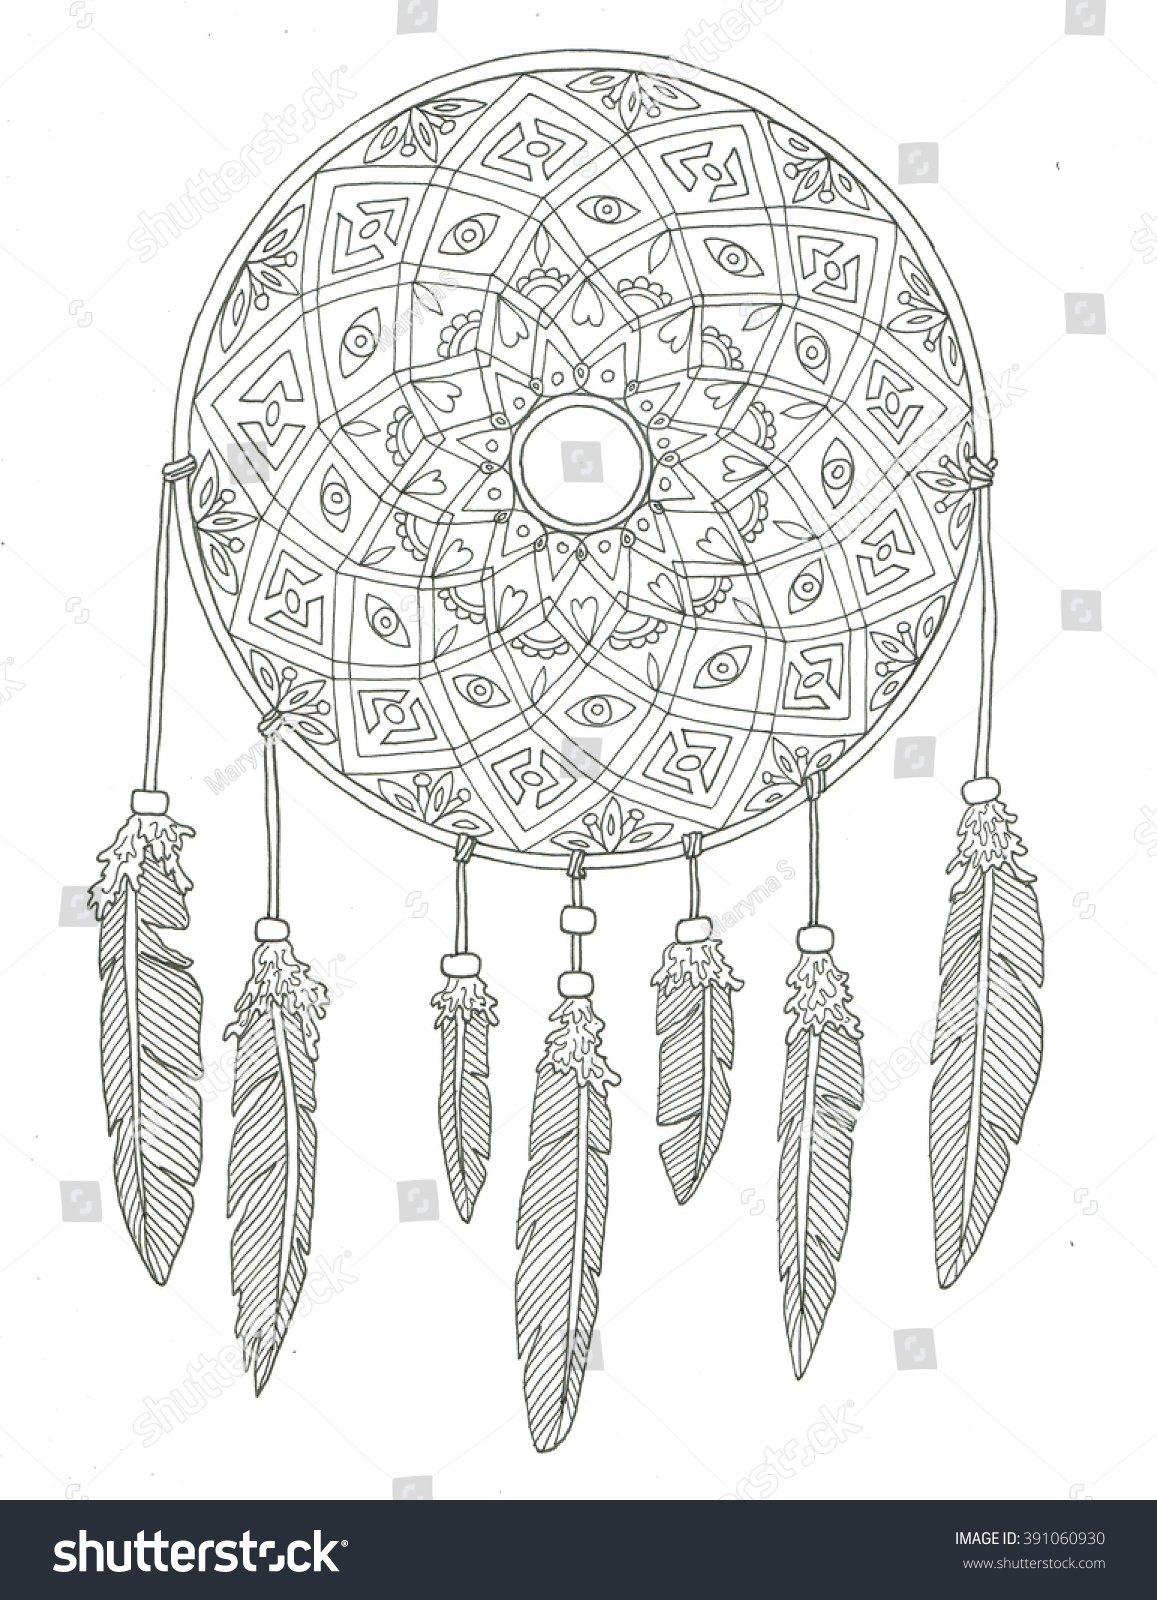 Coloring pages dream catchers -  Dream Catcher Coloring Page Download